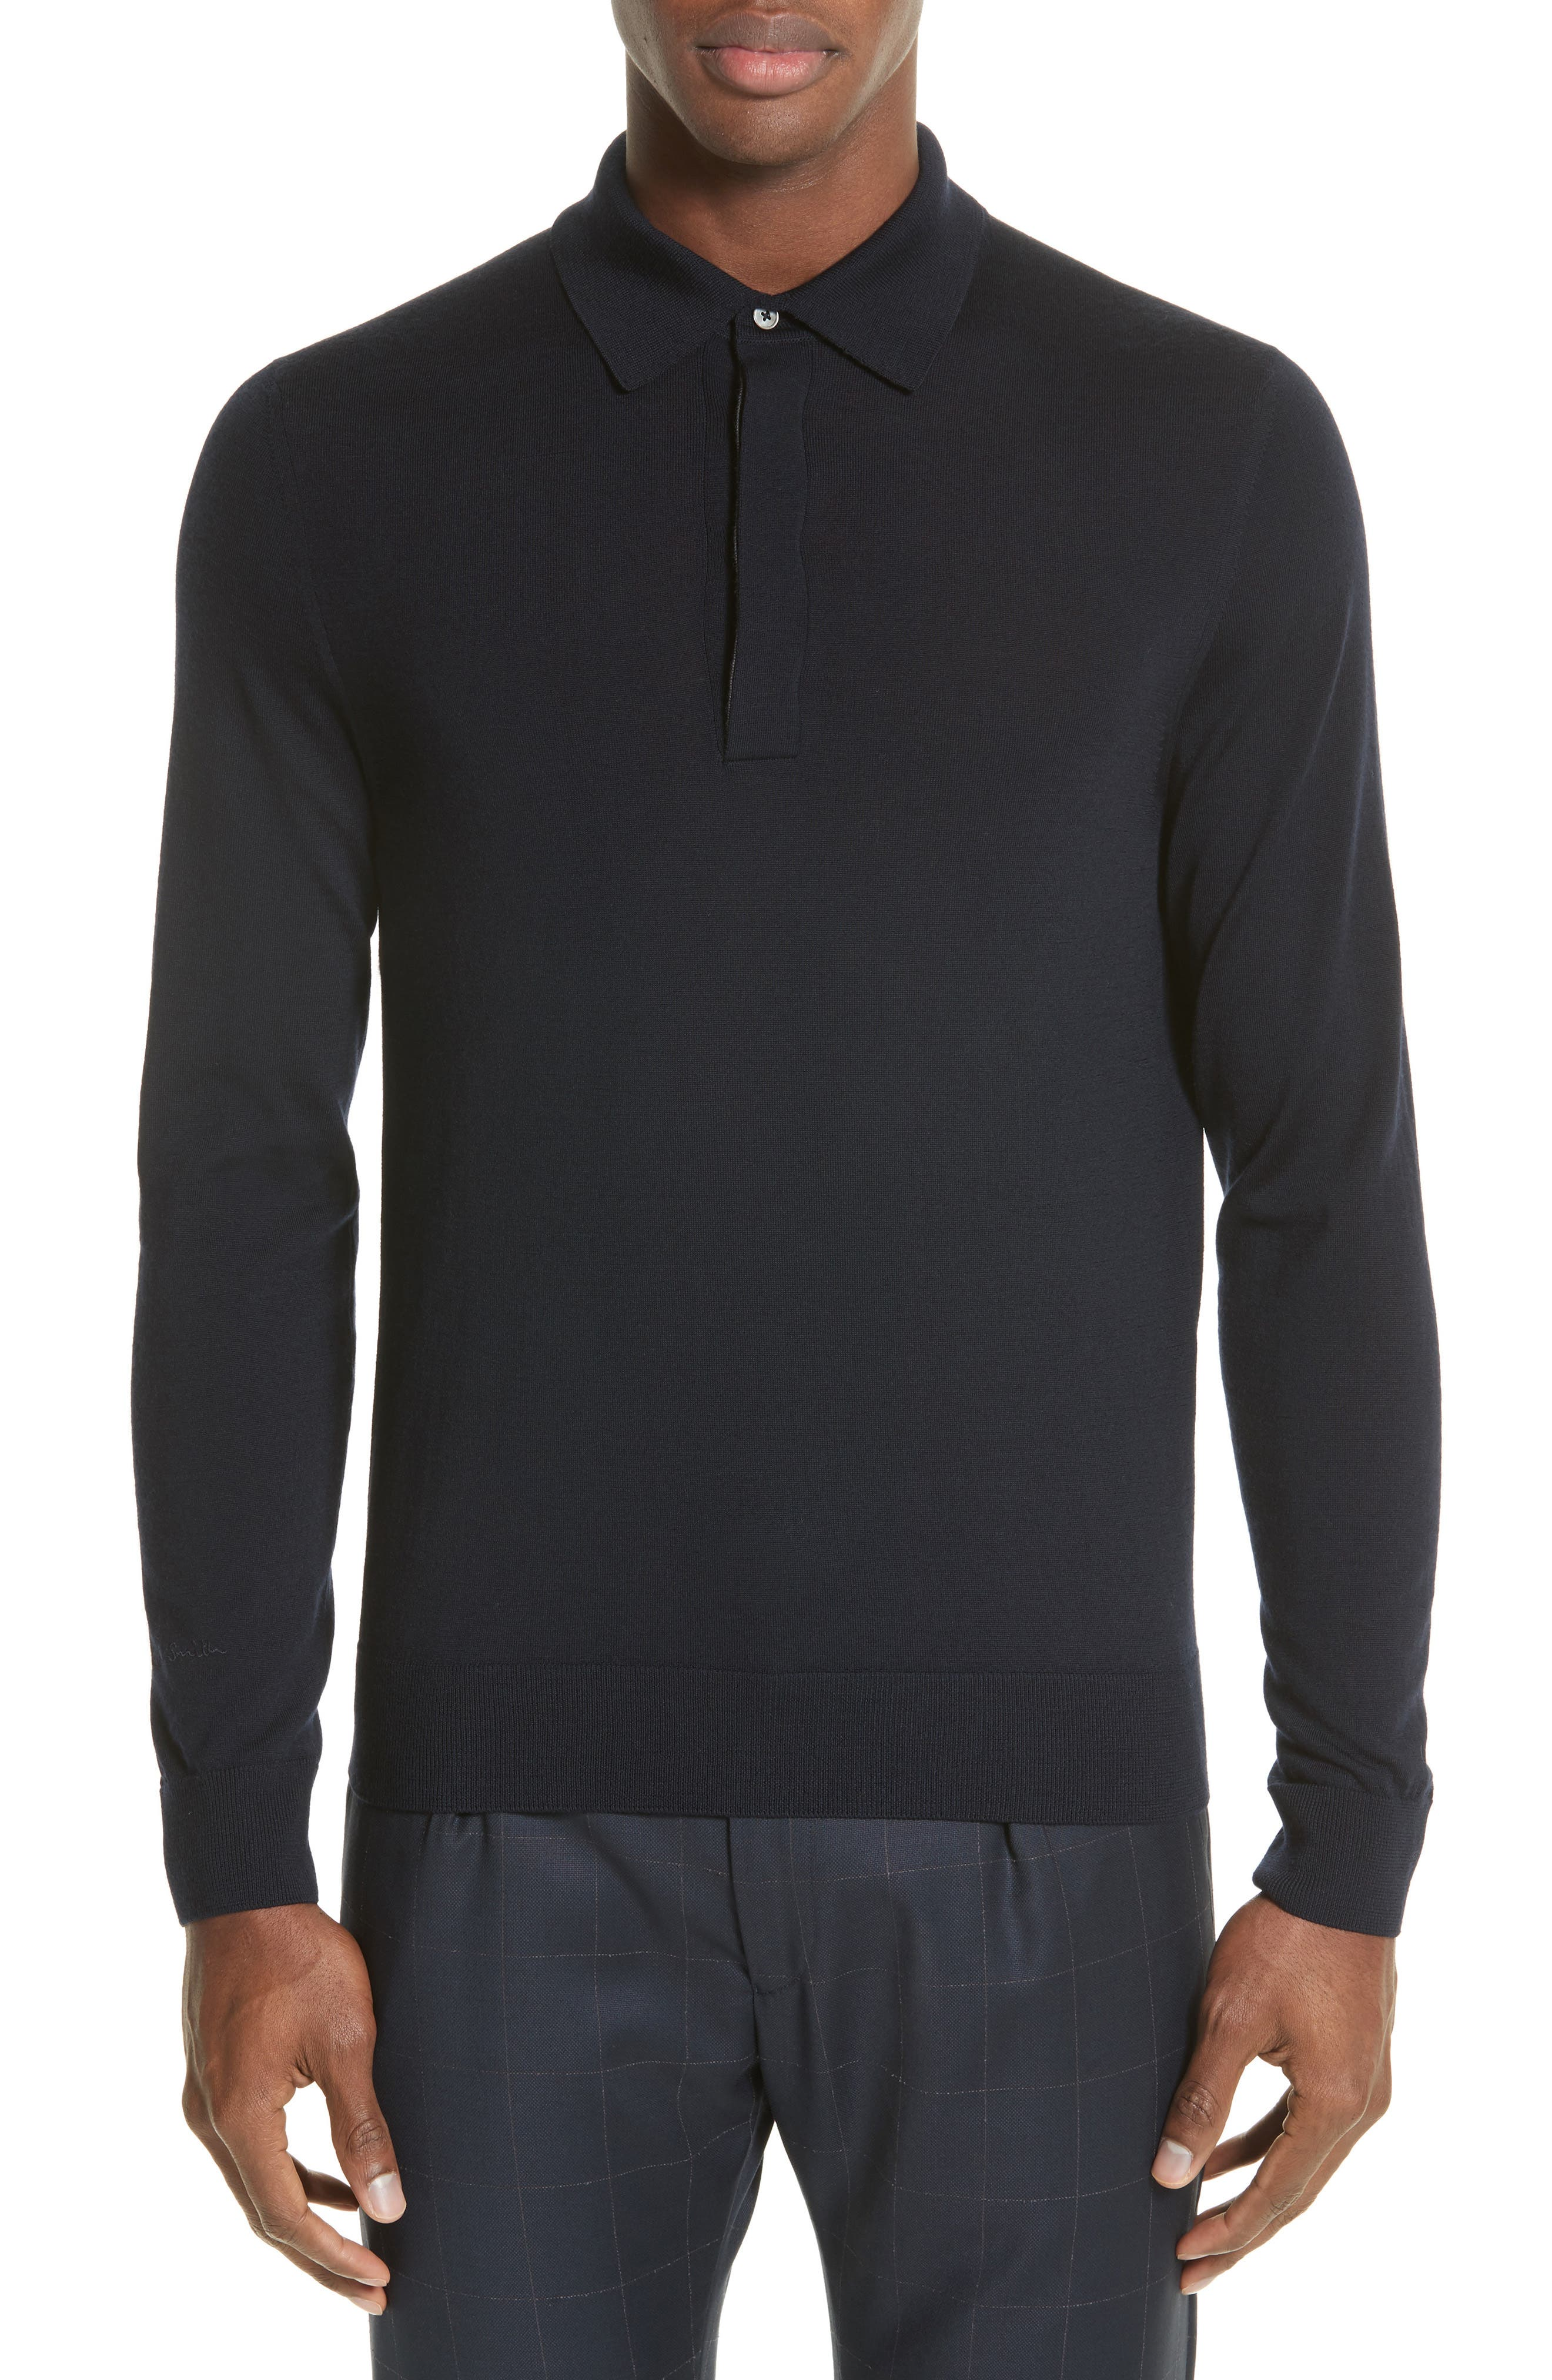 Alternate Image 1 Selected - Paul Smith Merino Wool Long Sleeve Polo